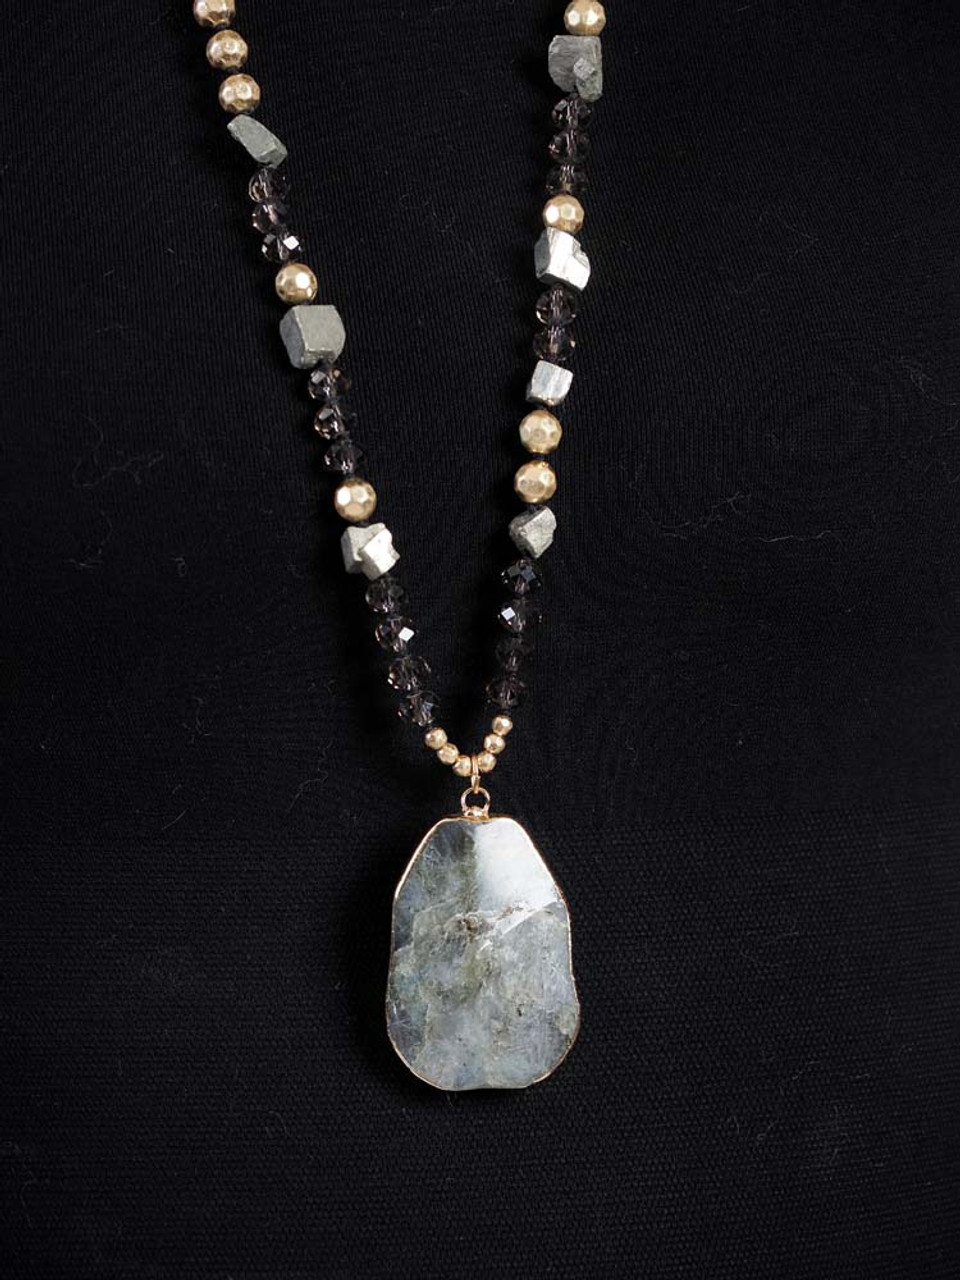 grey stone pendant necklace with gold and stone beading